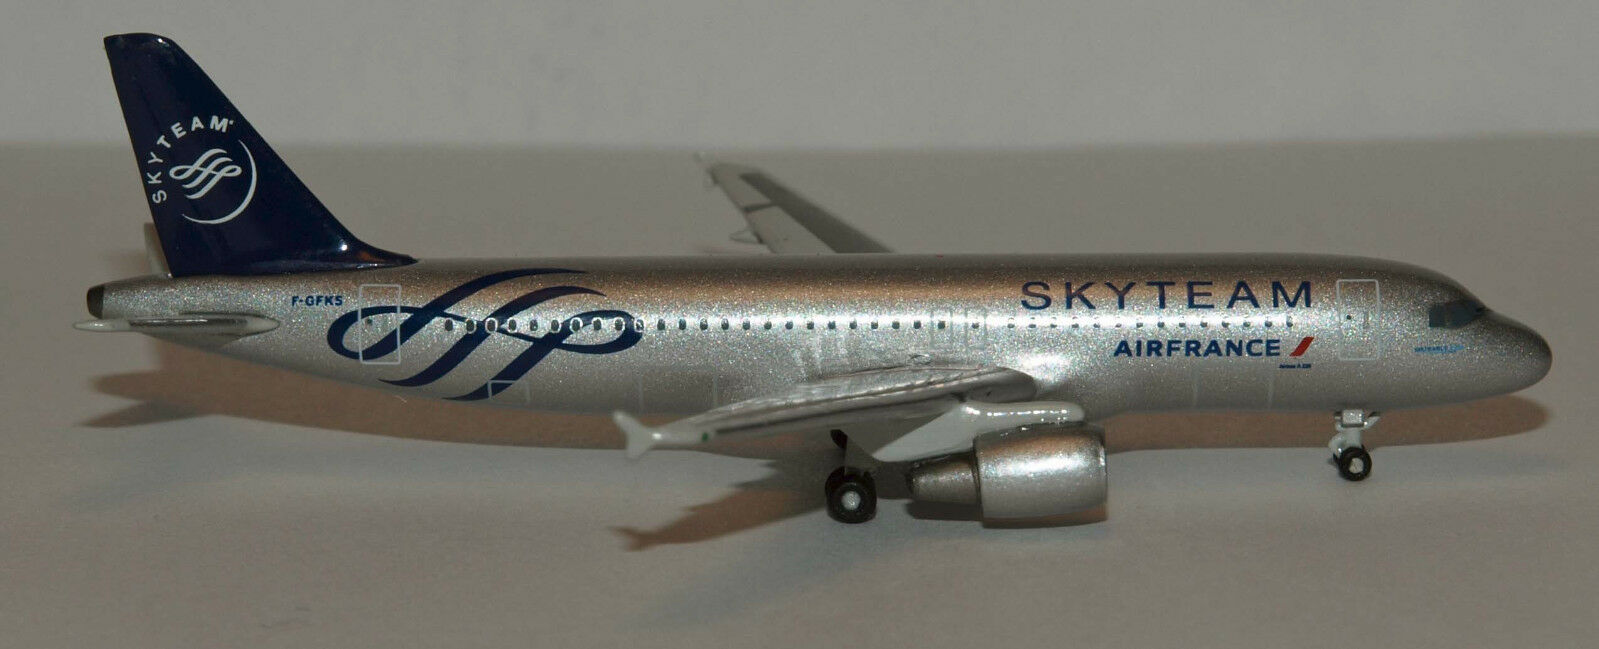 Herpa Herpa Herpa Wings 1 500 Air France Skyteam Airbus A320 prod id 518758 released 2011 2e8278